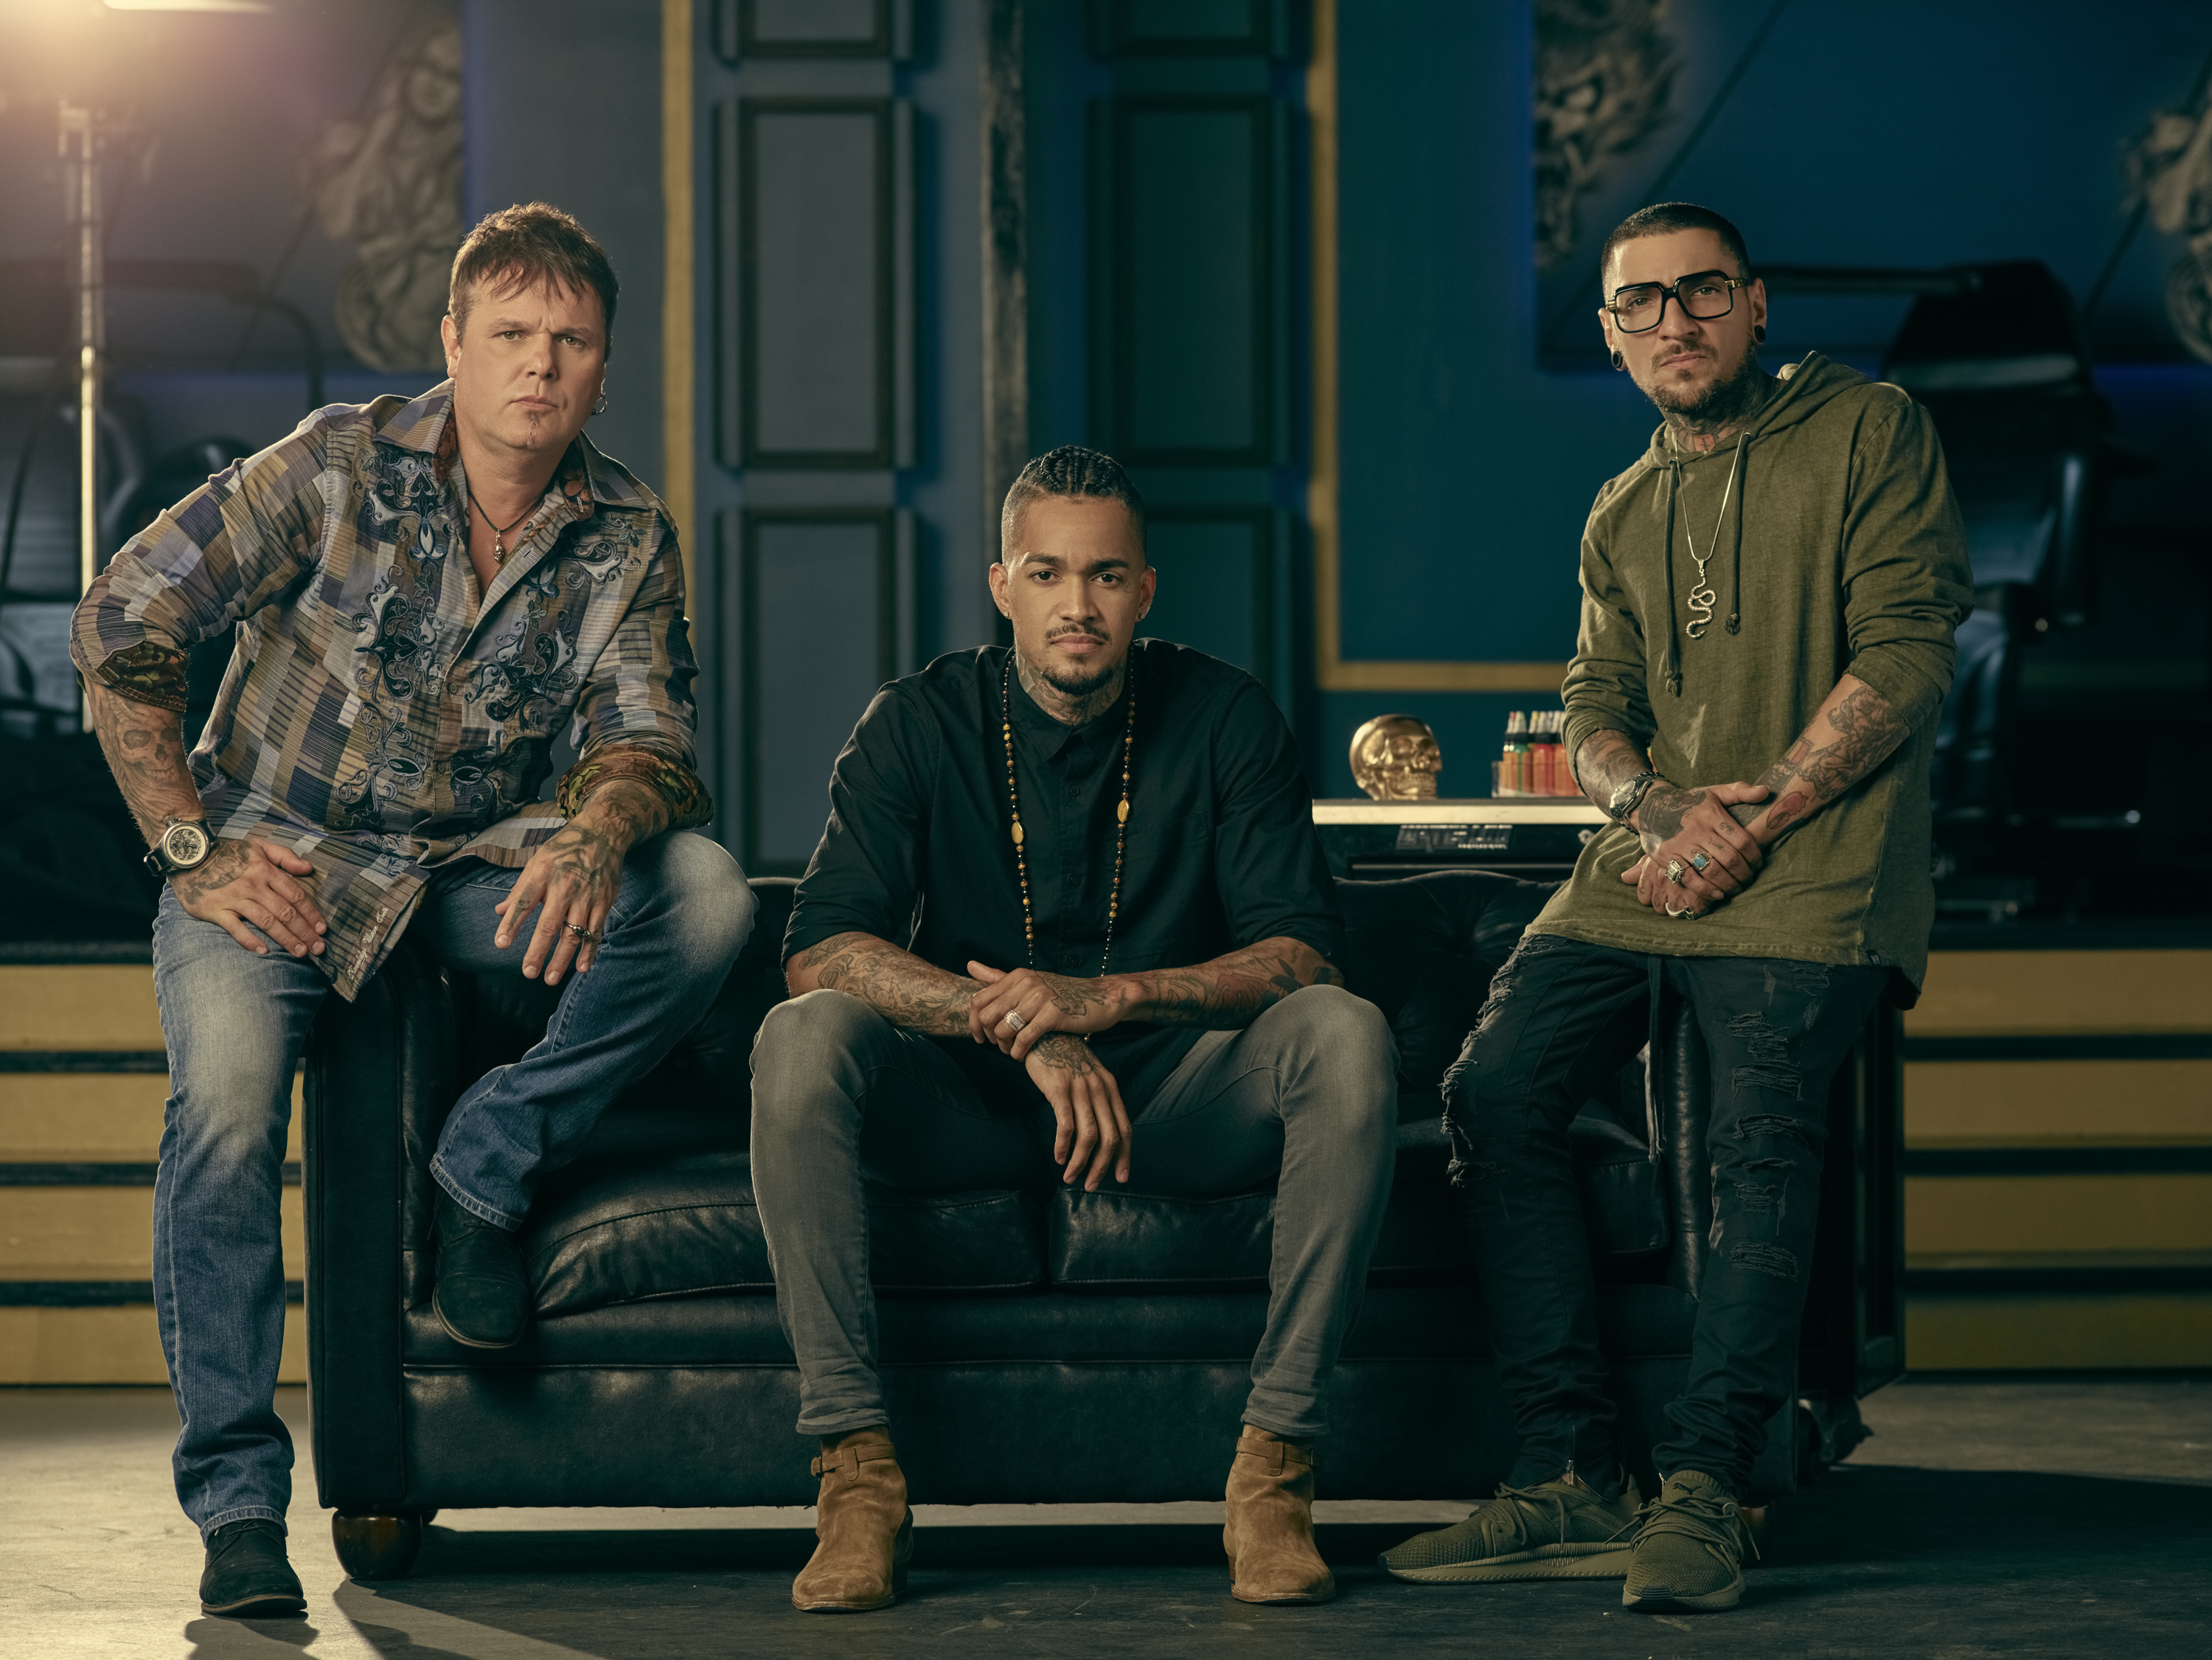 Ink Master: Return of the Masters (Season 10) | The Masters